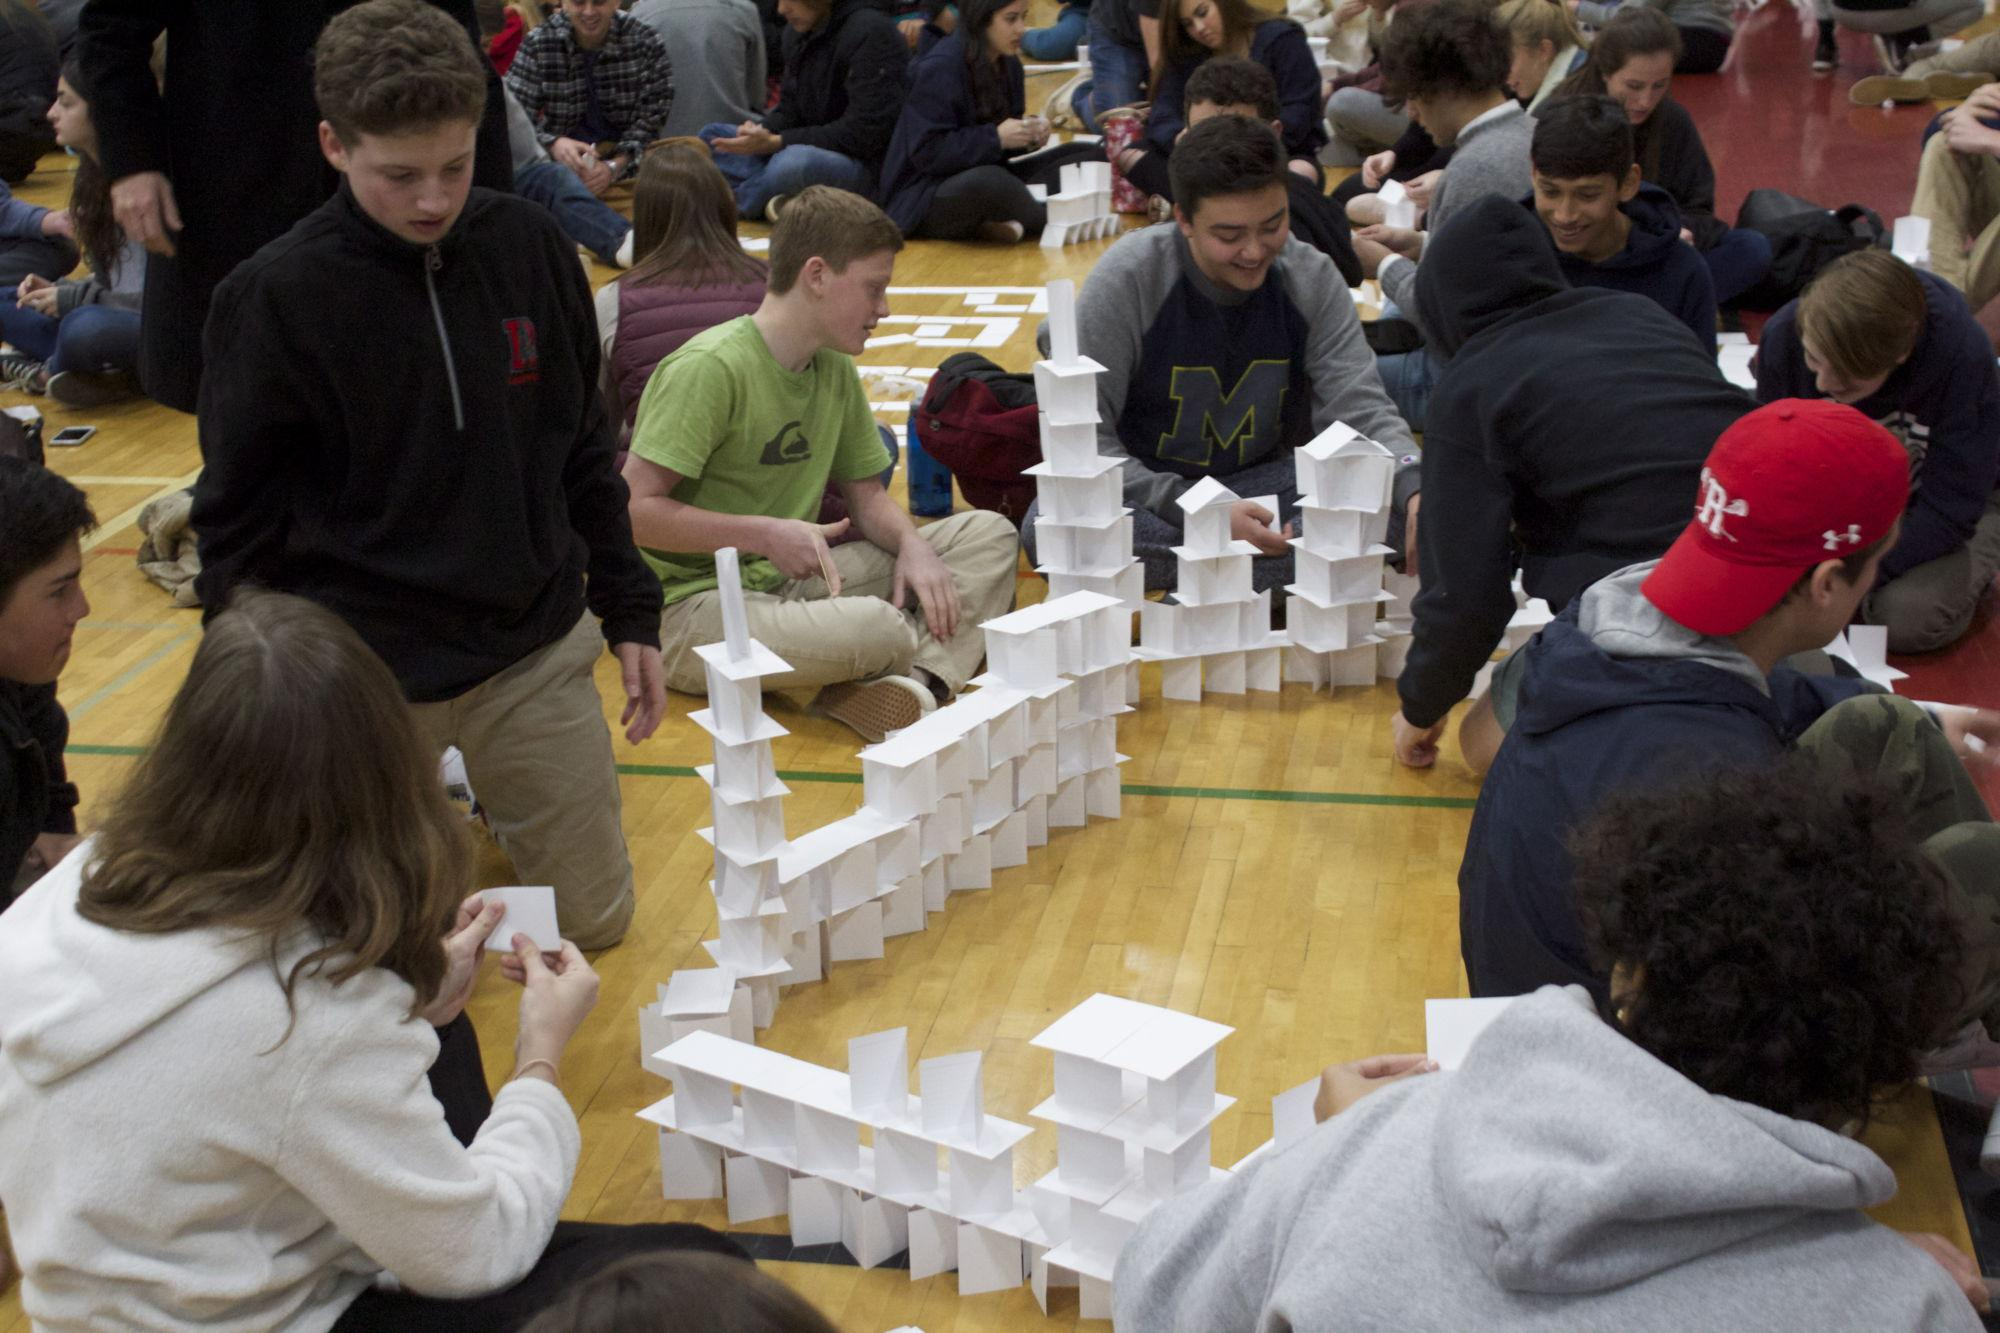 Gallery: Students build community during Advisory